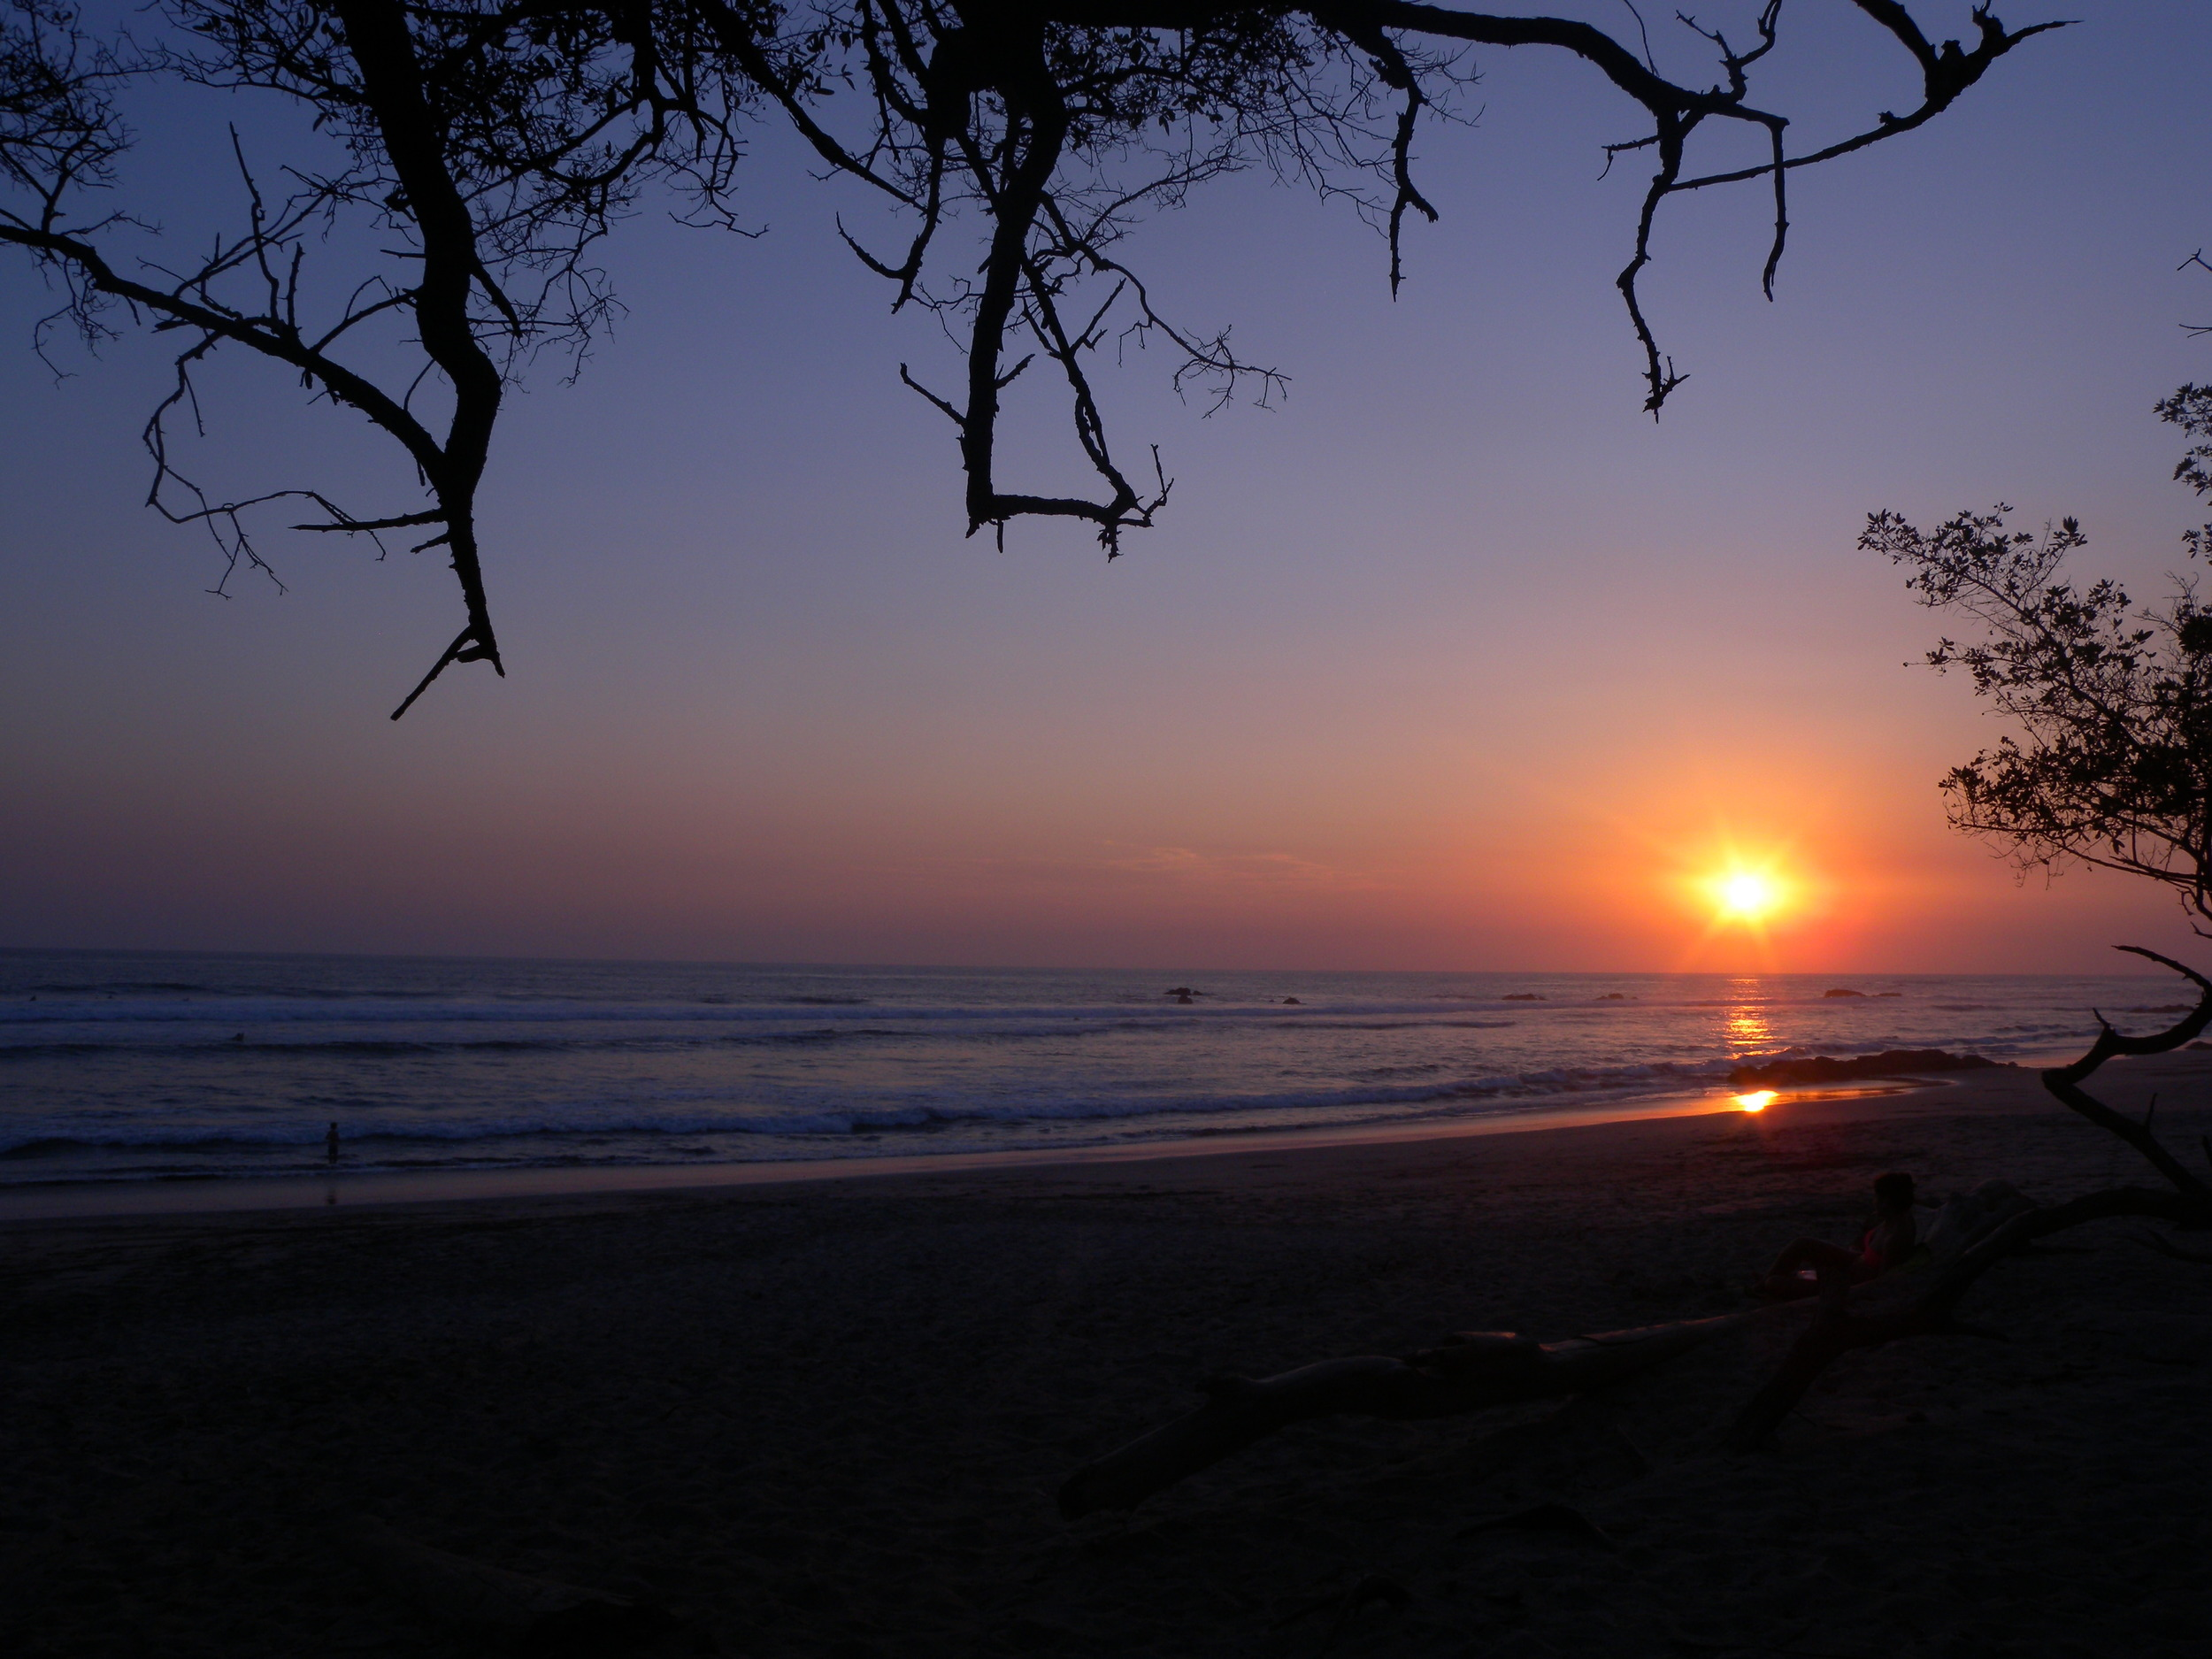 Sunset Playa Negra, Guanacaste, Costa Rica